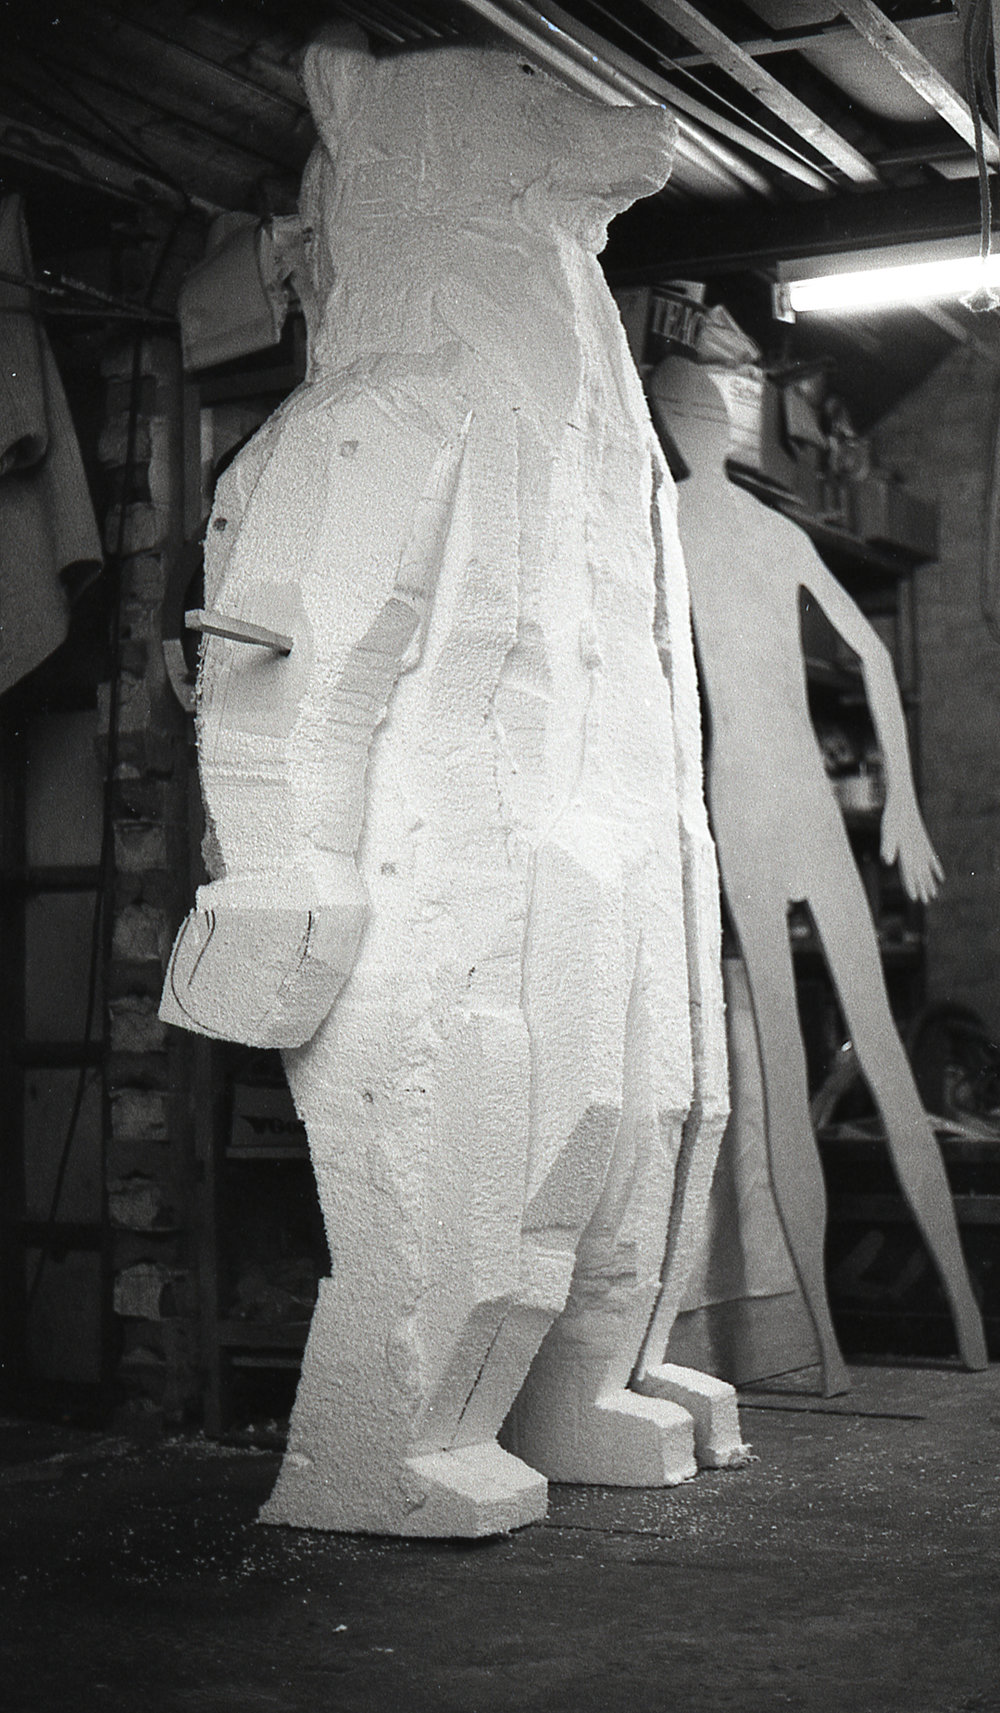 - A polystyrene sculpt was used to symulate the over size of ` Banana Paul`